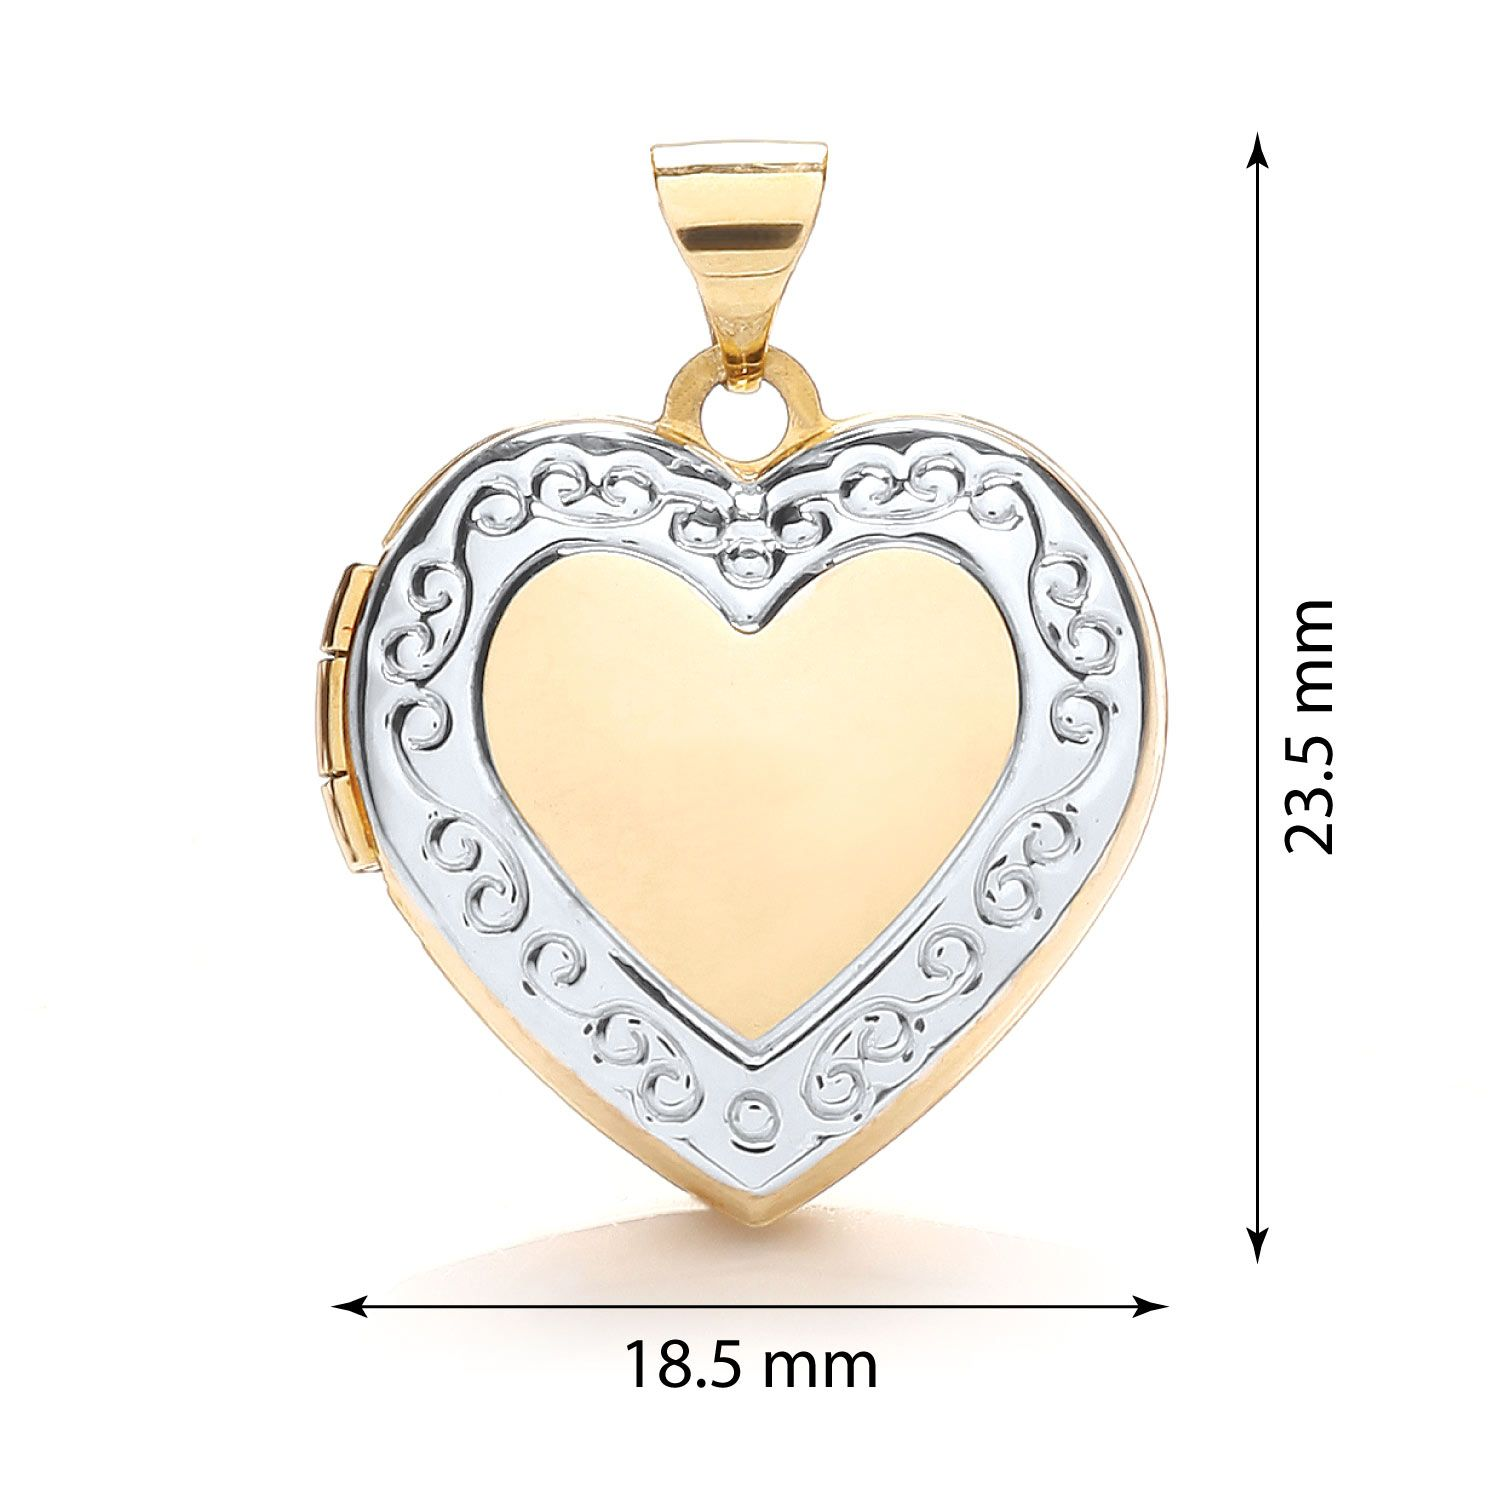 9ct white and Yellow Gold Heart Shape Locket Gold